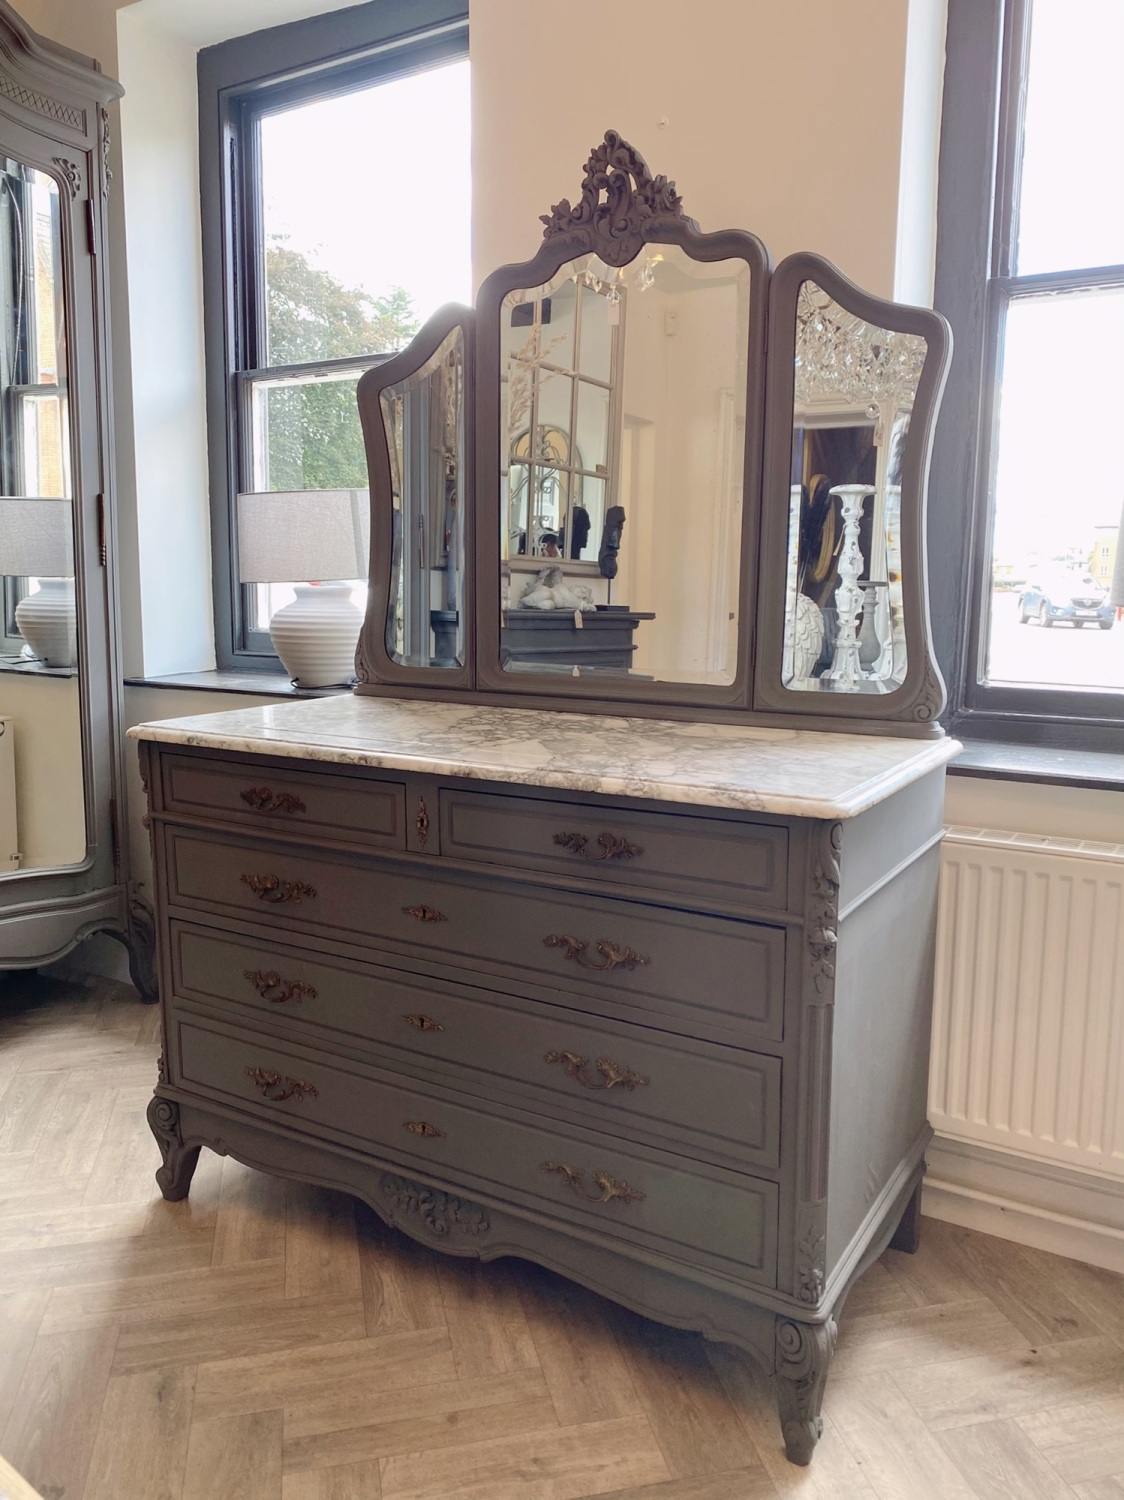 Painted Rose wood French commode marble & mirror